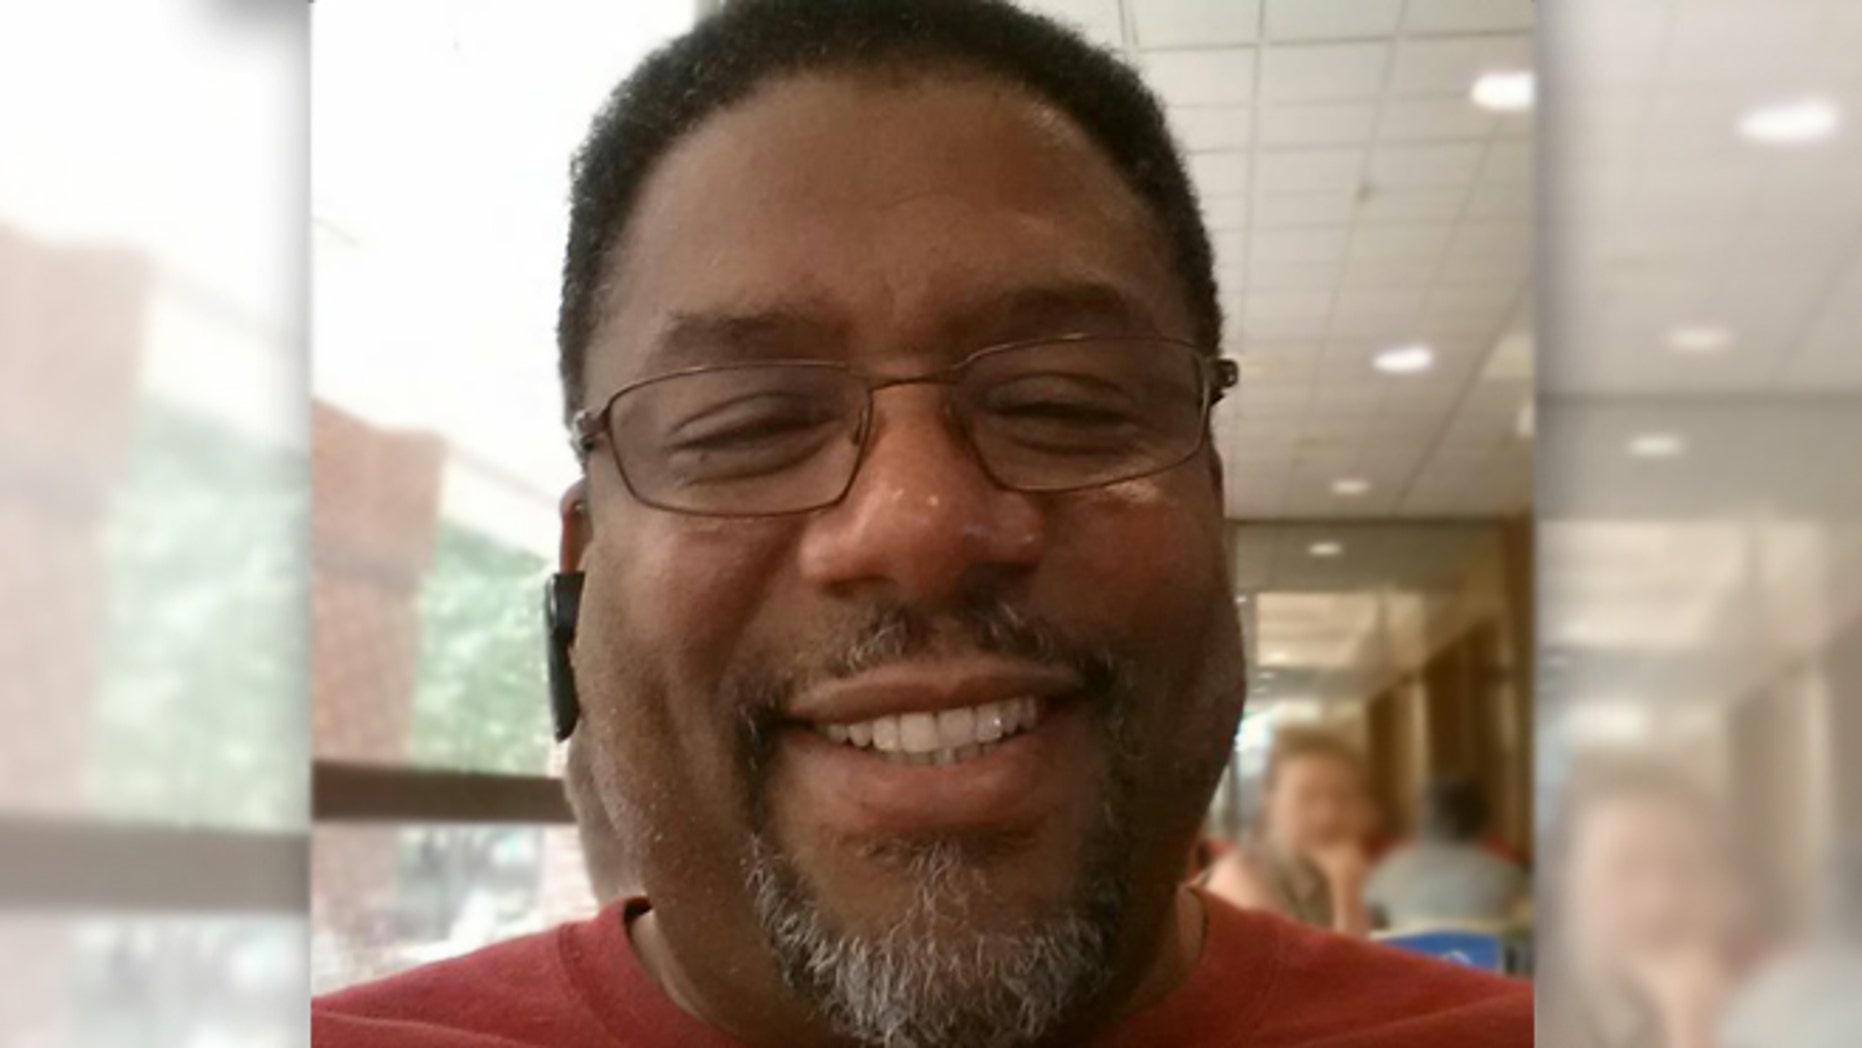 Michael A. Palmer, a 58-year-old father of eight died in May 2013 during a cervical spine fusion procedure at an outpatient clinic in Connecticut.